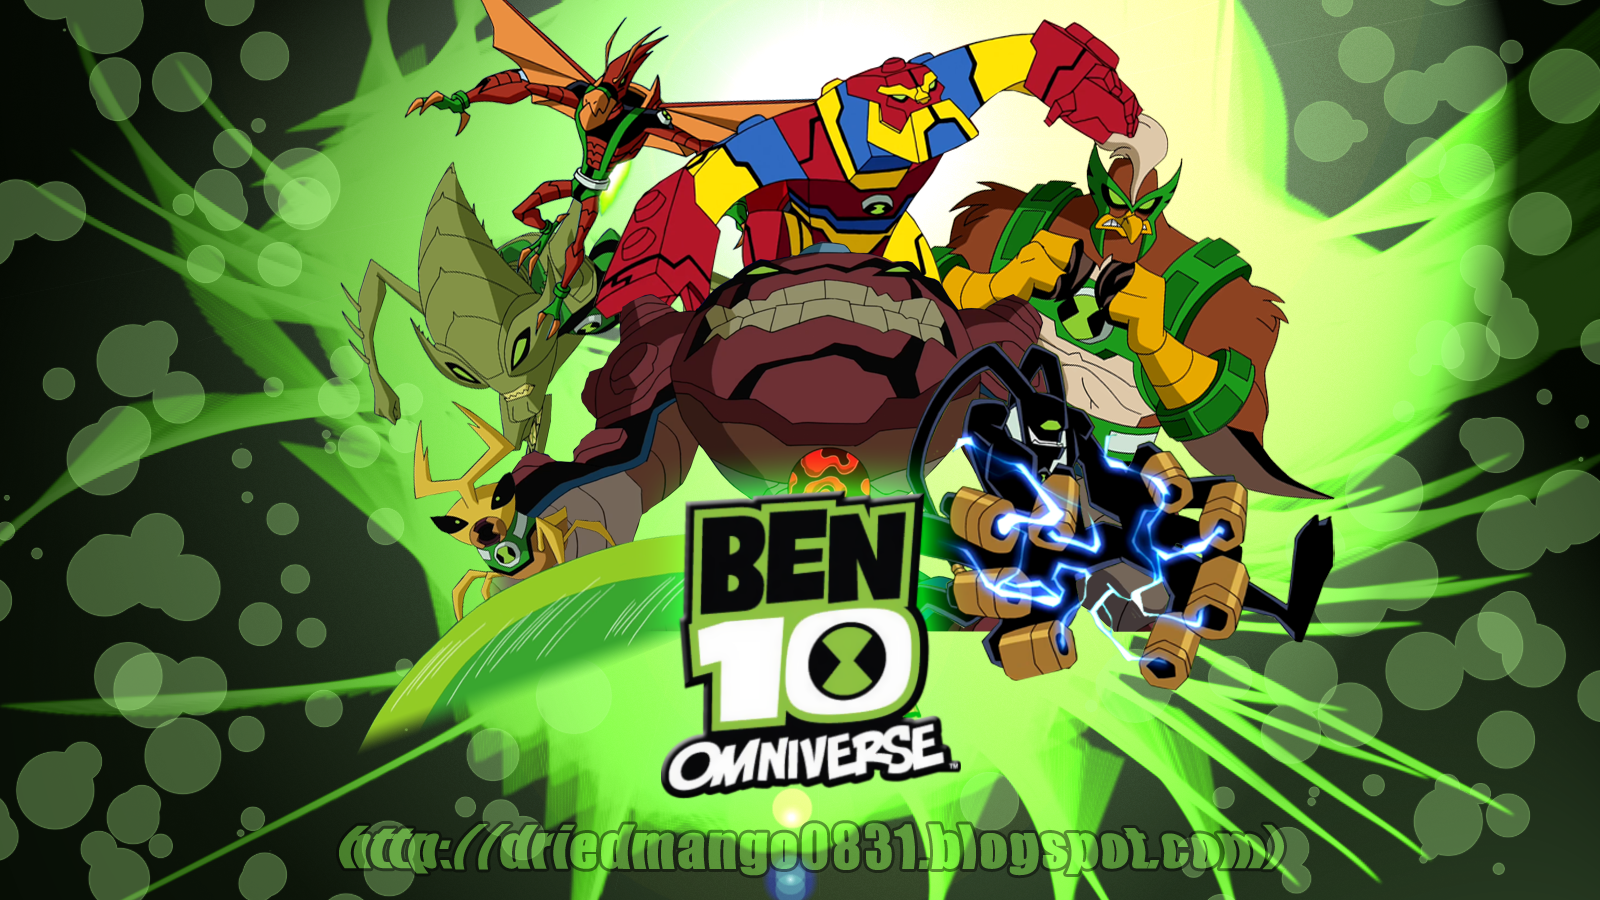 Dried mango new ben 10 omniverse wallpapers here are two new wallpapers i made hope you like it voltagebd Choice Image